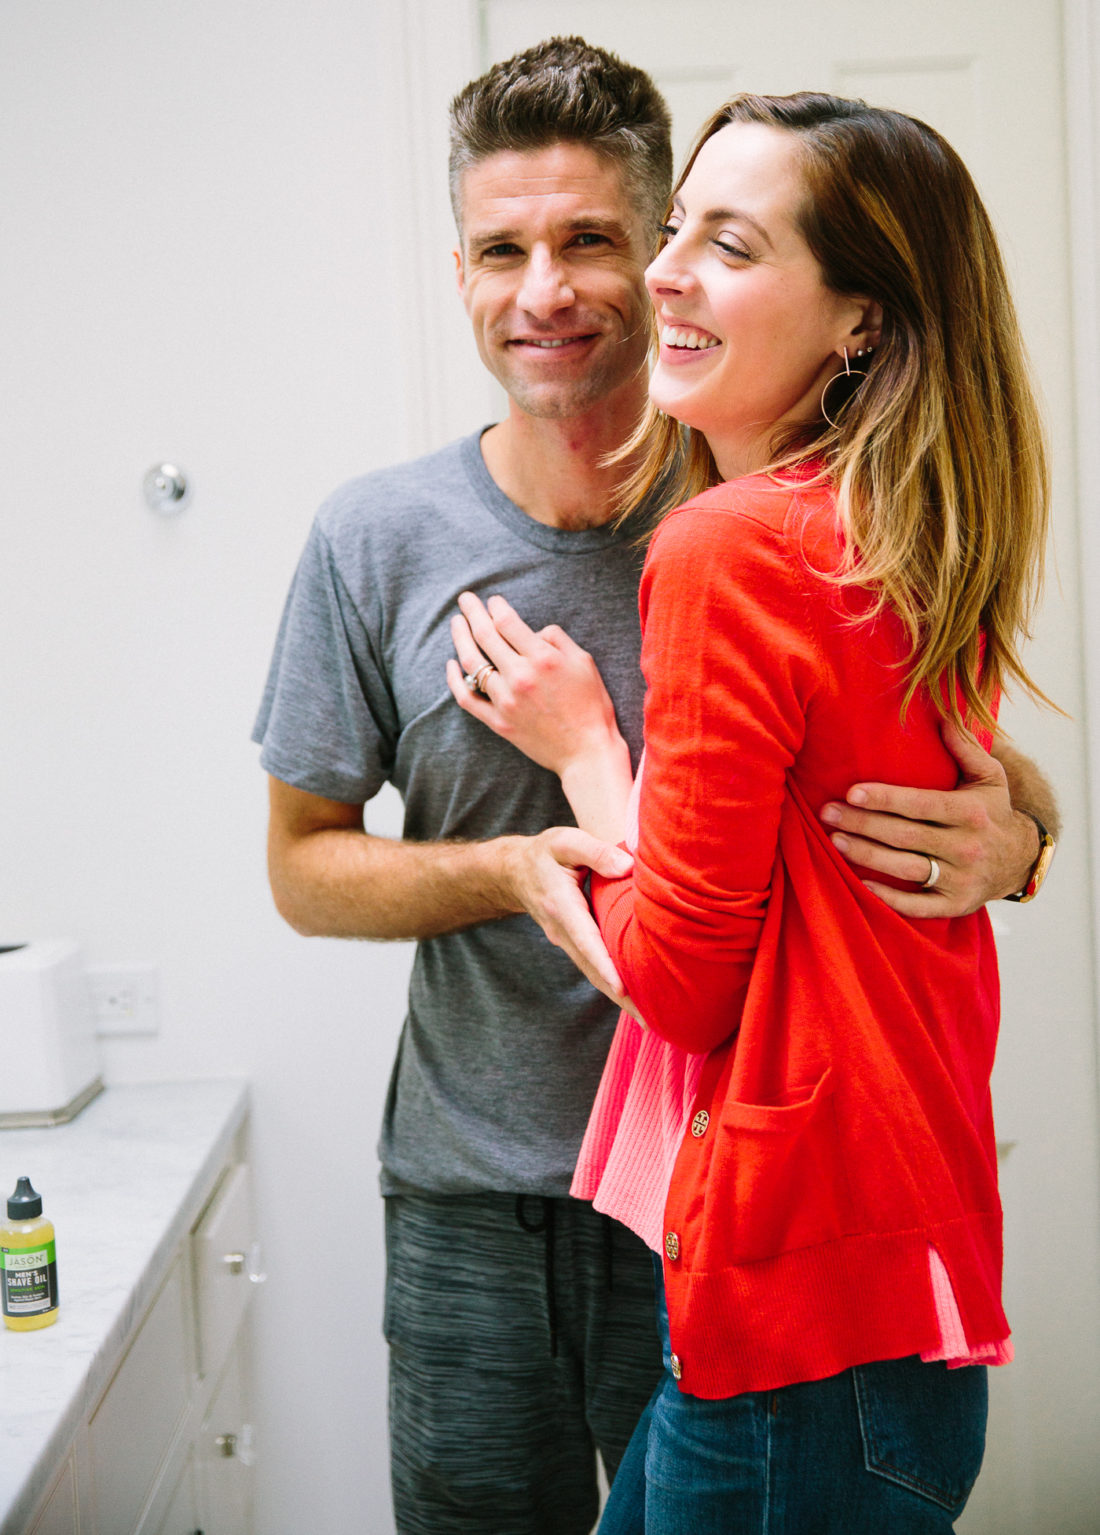 Eva Amurri Martino cuddles up to husband Kyle Martino in the bathroom of their Connectiut home